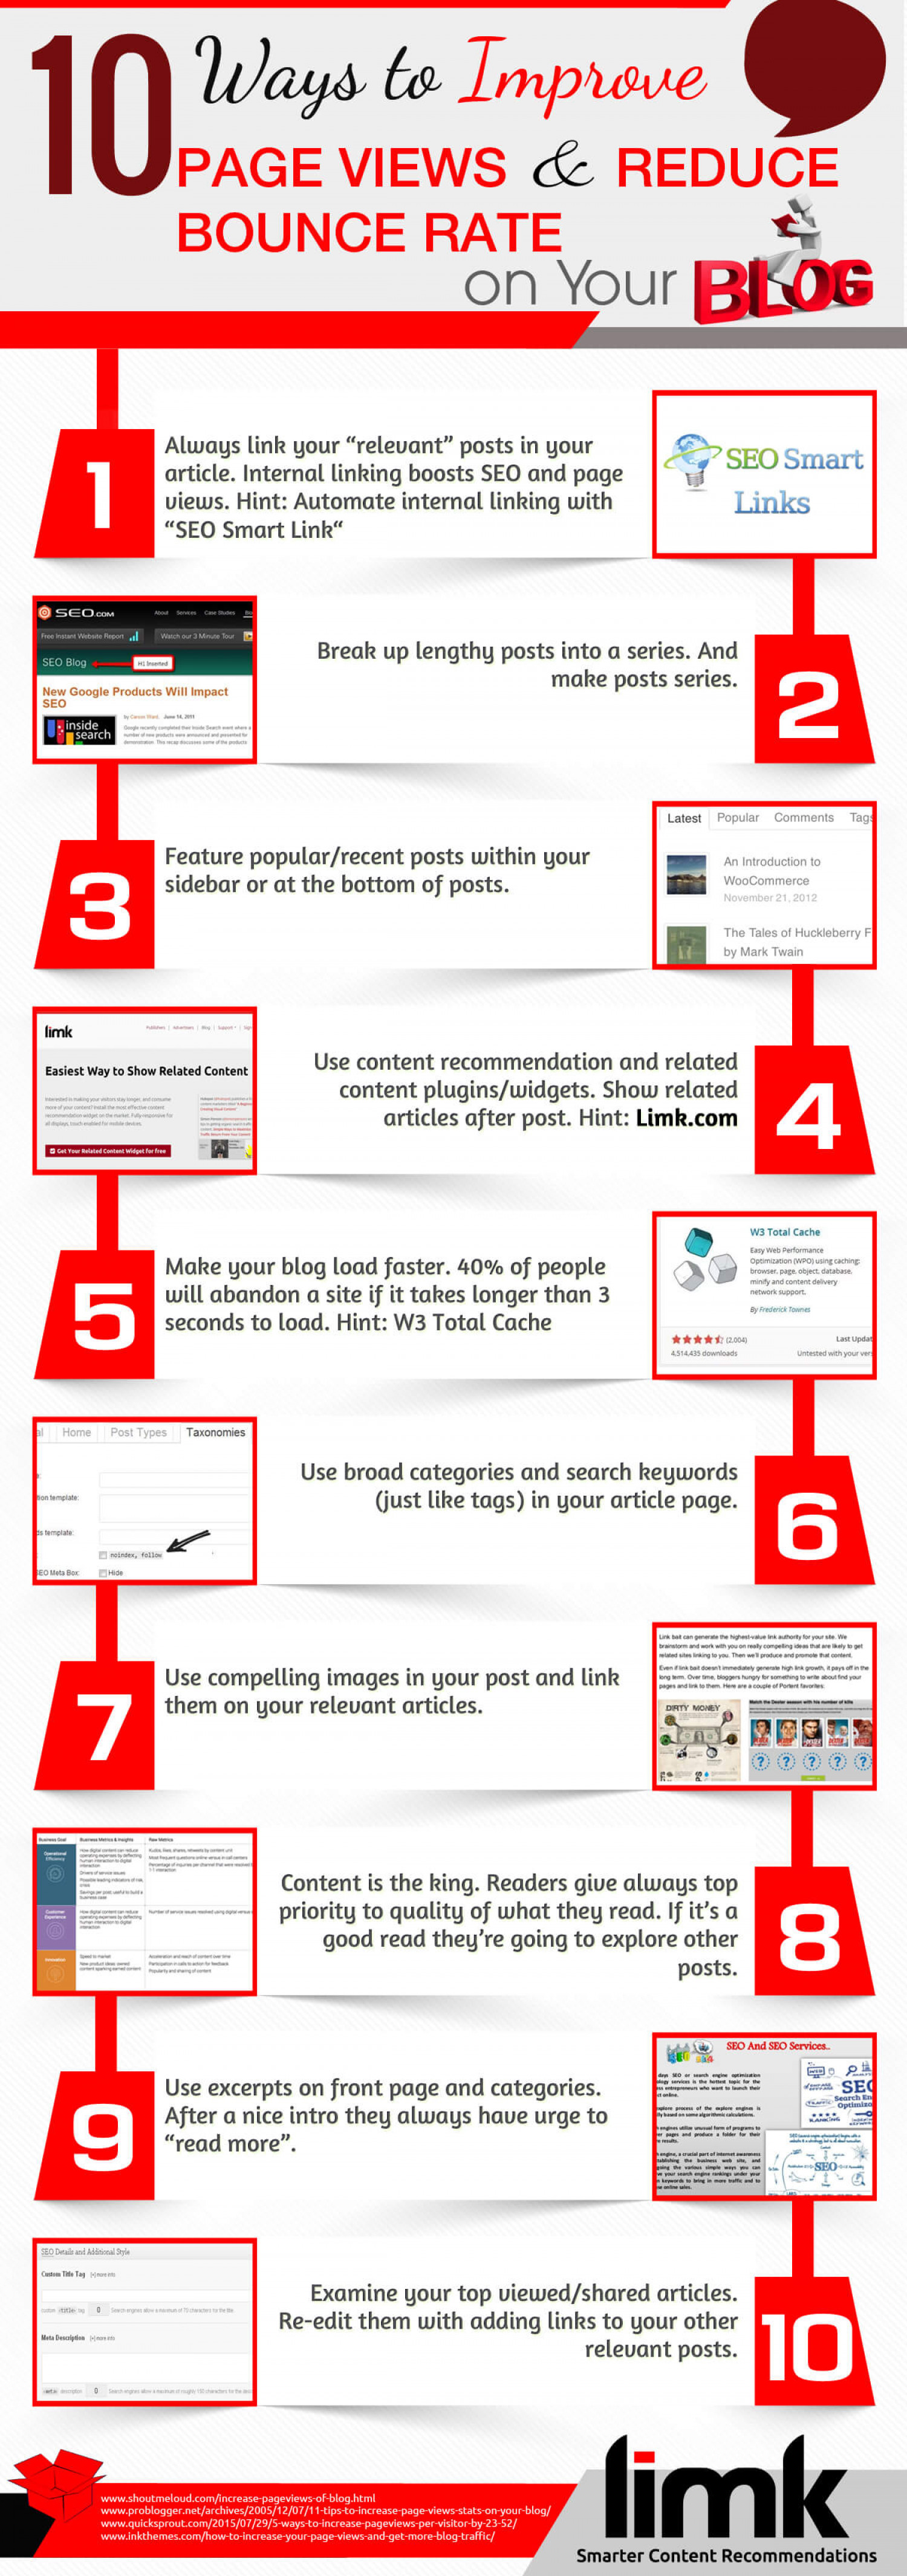 10 Ways to Improve Page Views & Reduce Bounce Rate on your Blog Infographic